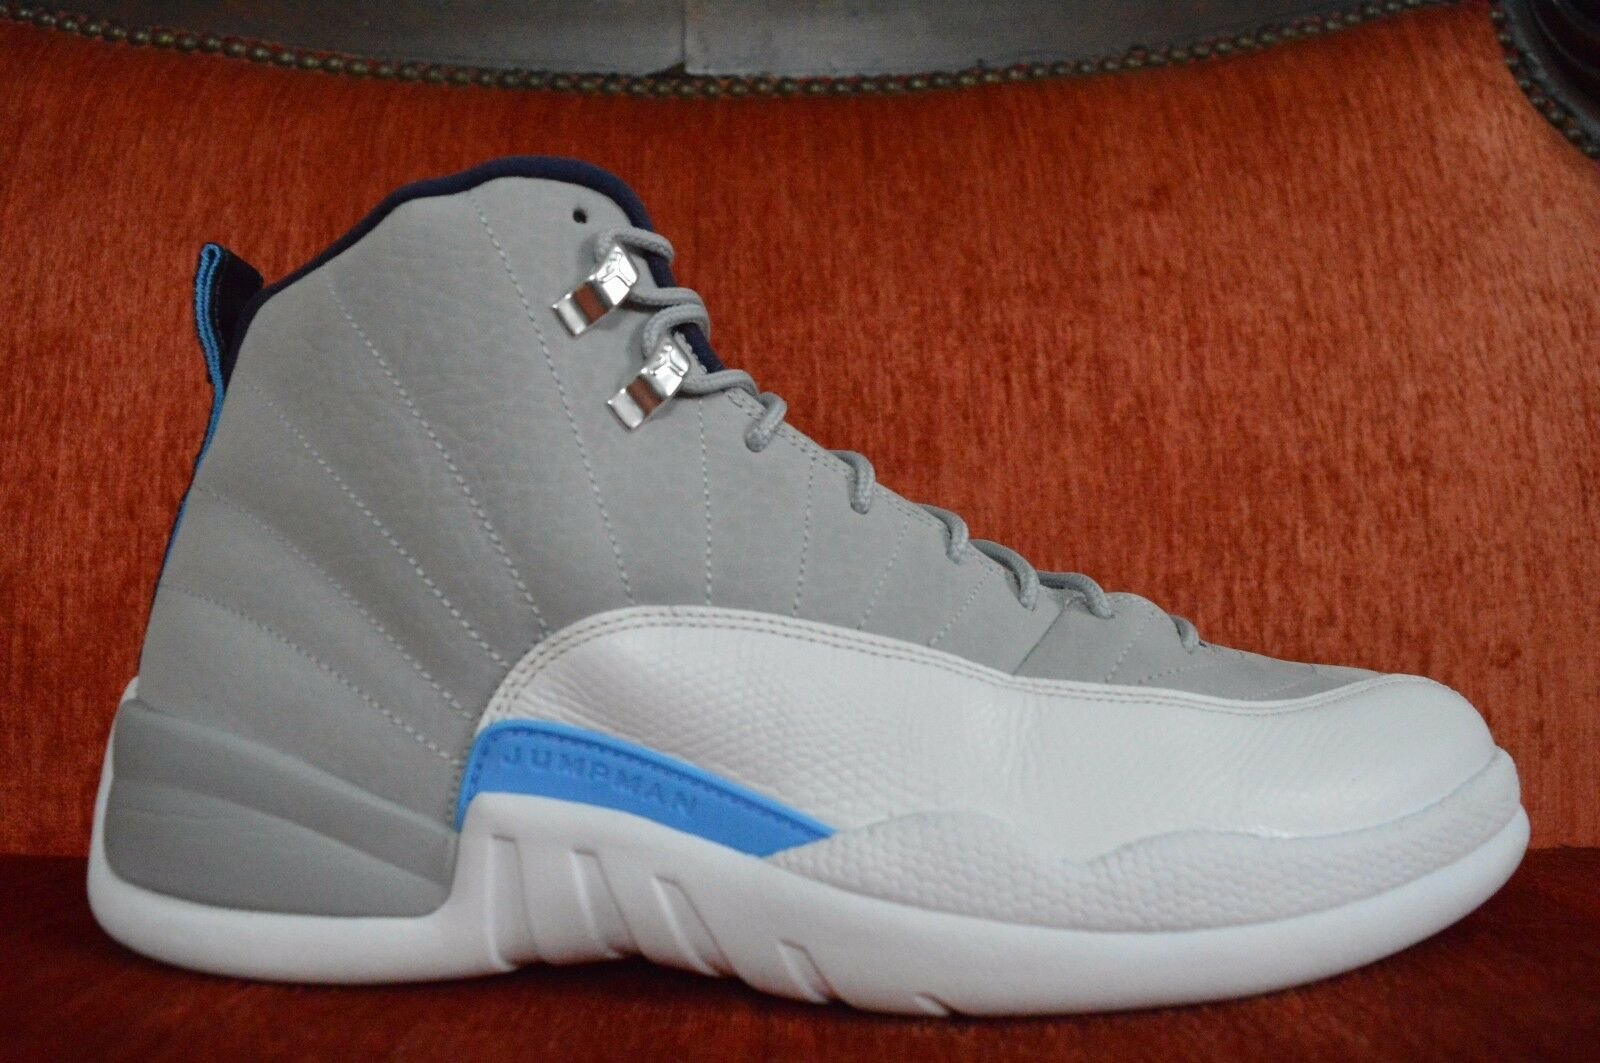 WORN ONCE Nike Air Jordan Xll Retro 12 UNC Wolf Grey Blue 130690-007 Comfortable Comfortable and good-looking